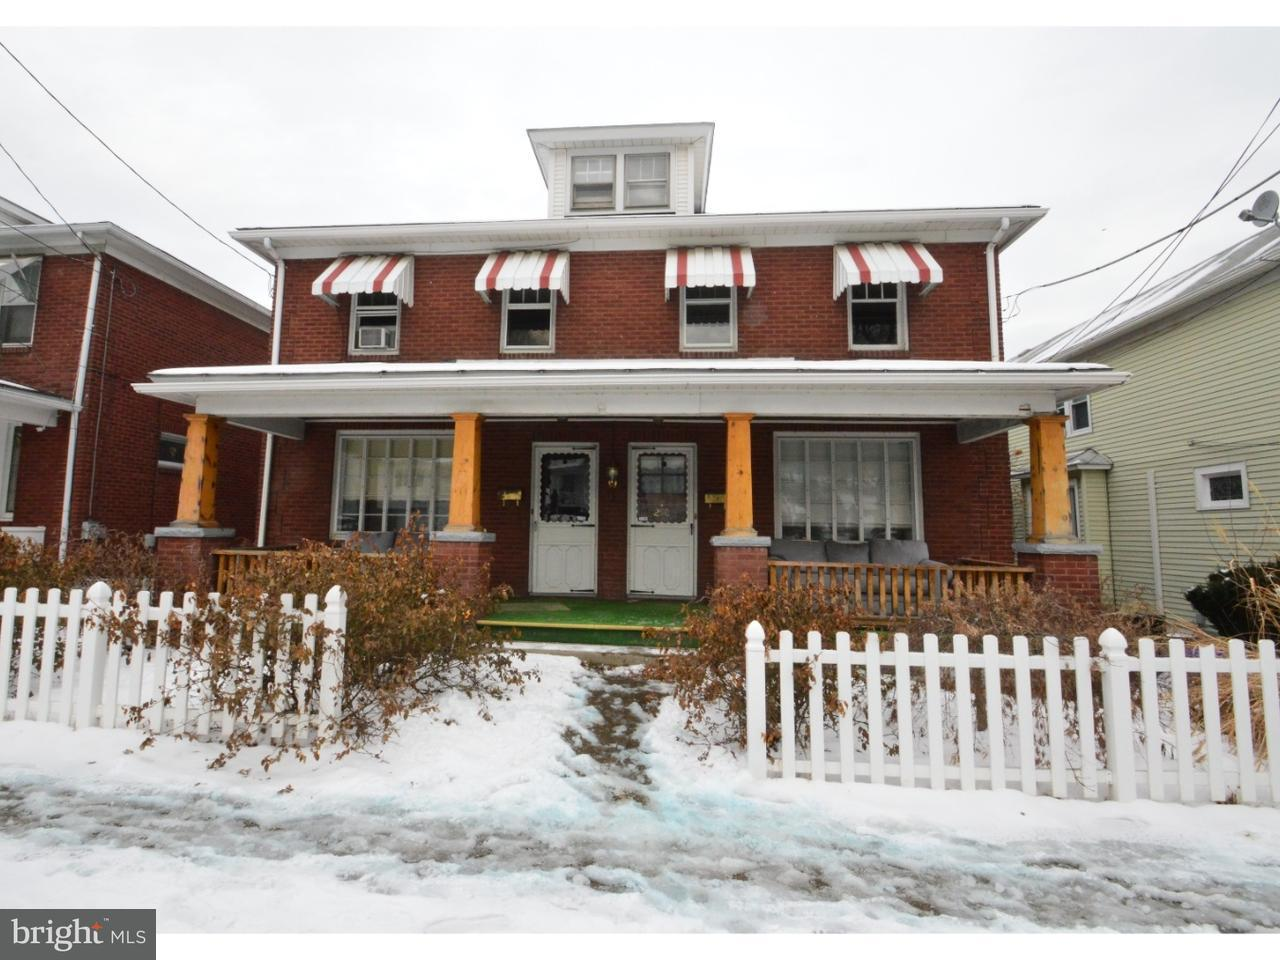 Duplex for Sale at 290-292 LEE PARK Avenue Wilkes Barre, Pennsylvania 18706 United States